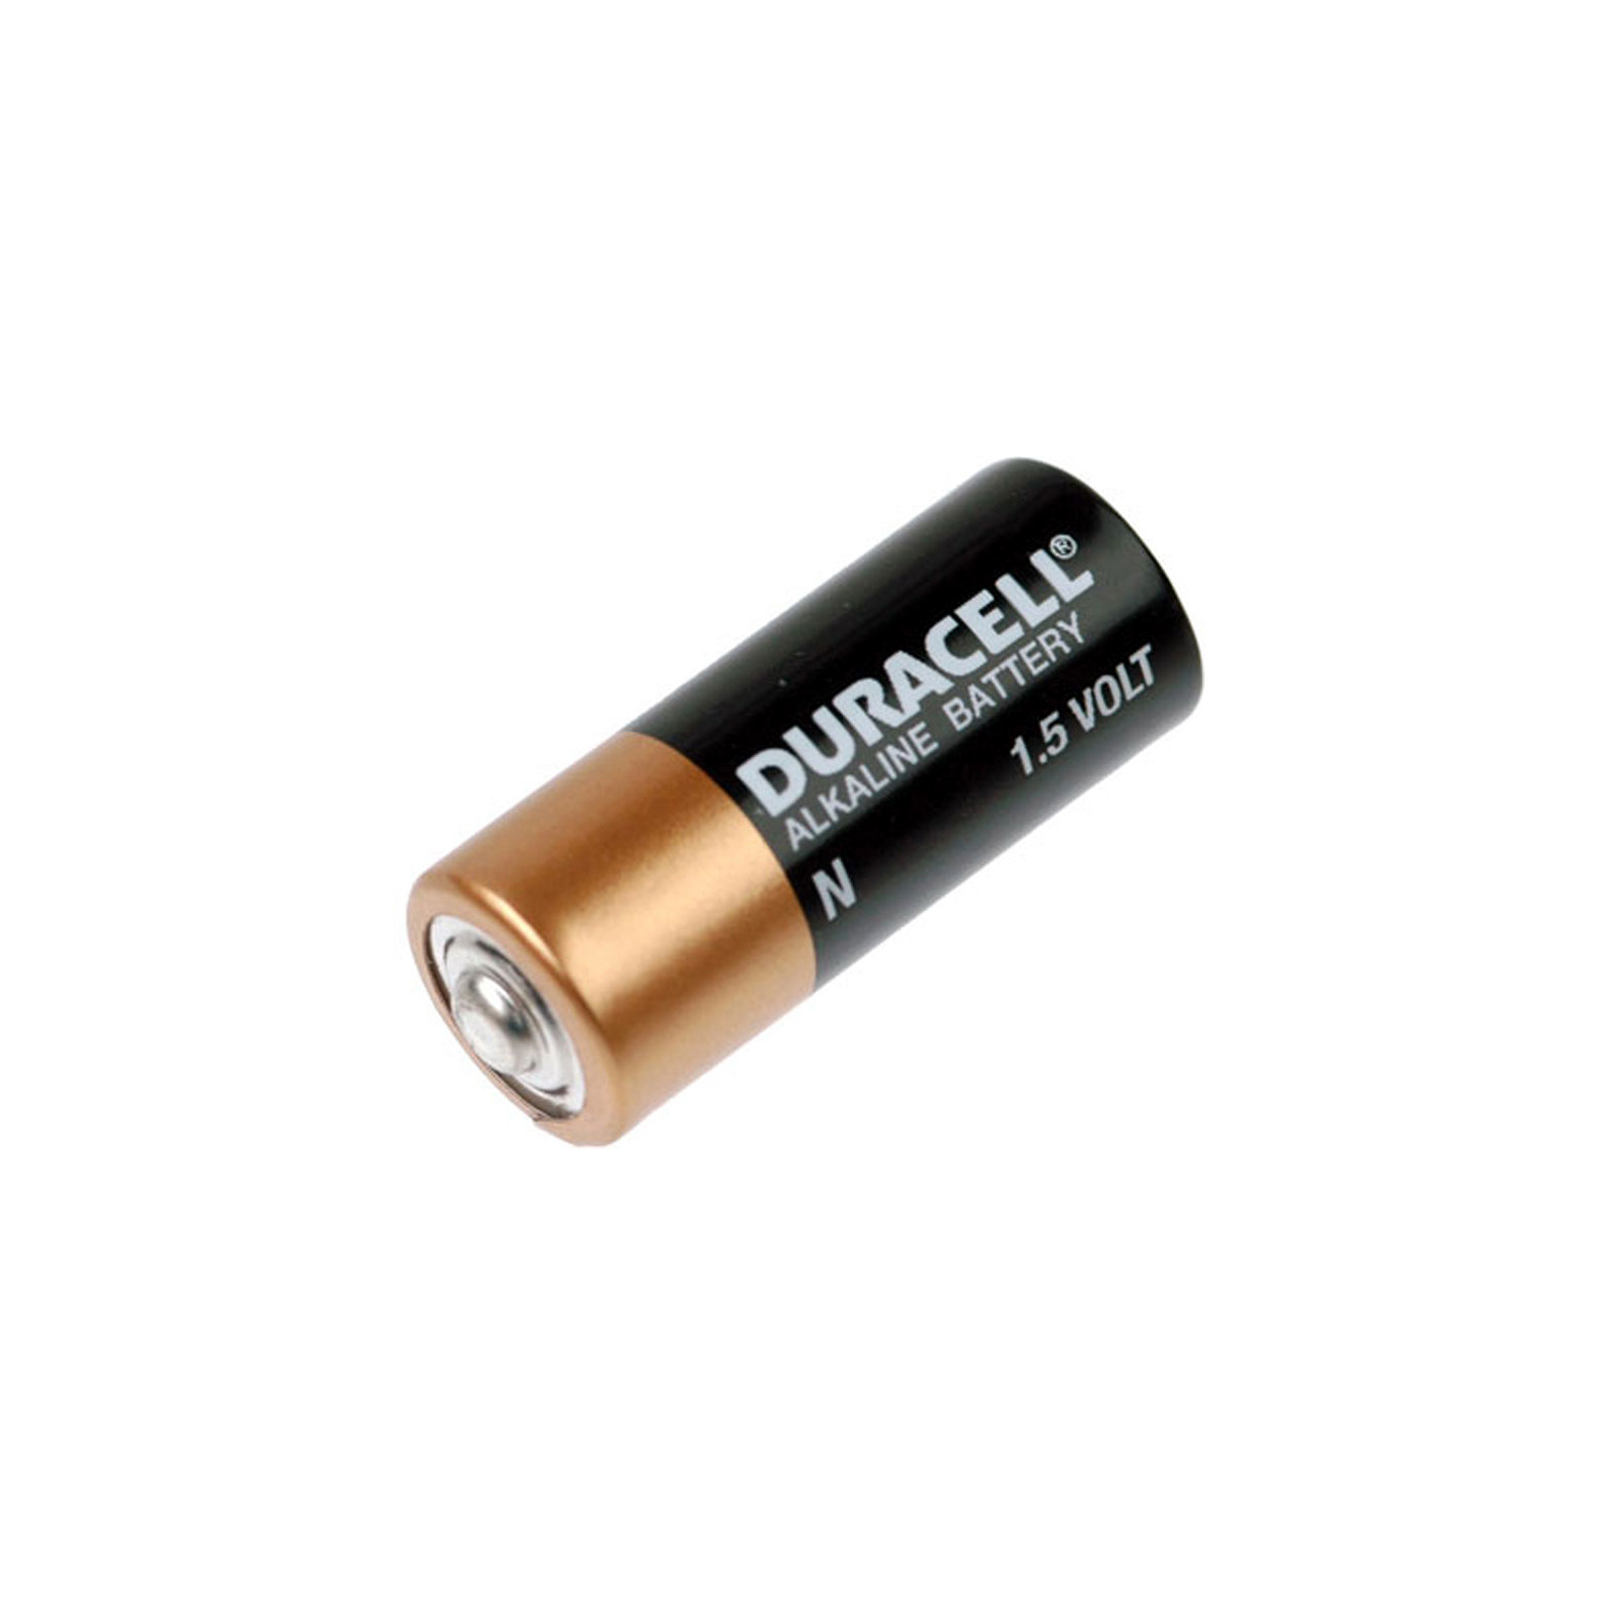 duracell mn9100 medical 1 5 volt n size alkaline battery fast usa ship ebay. Black Bedroom Furniture Sets. Home Design Ideas